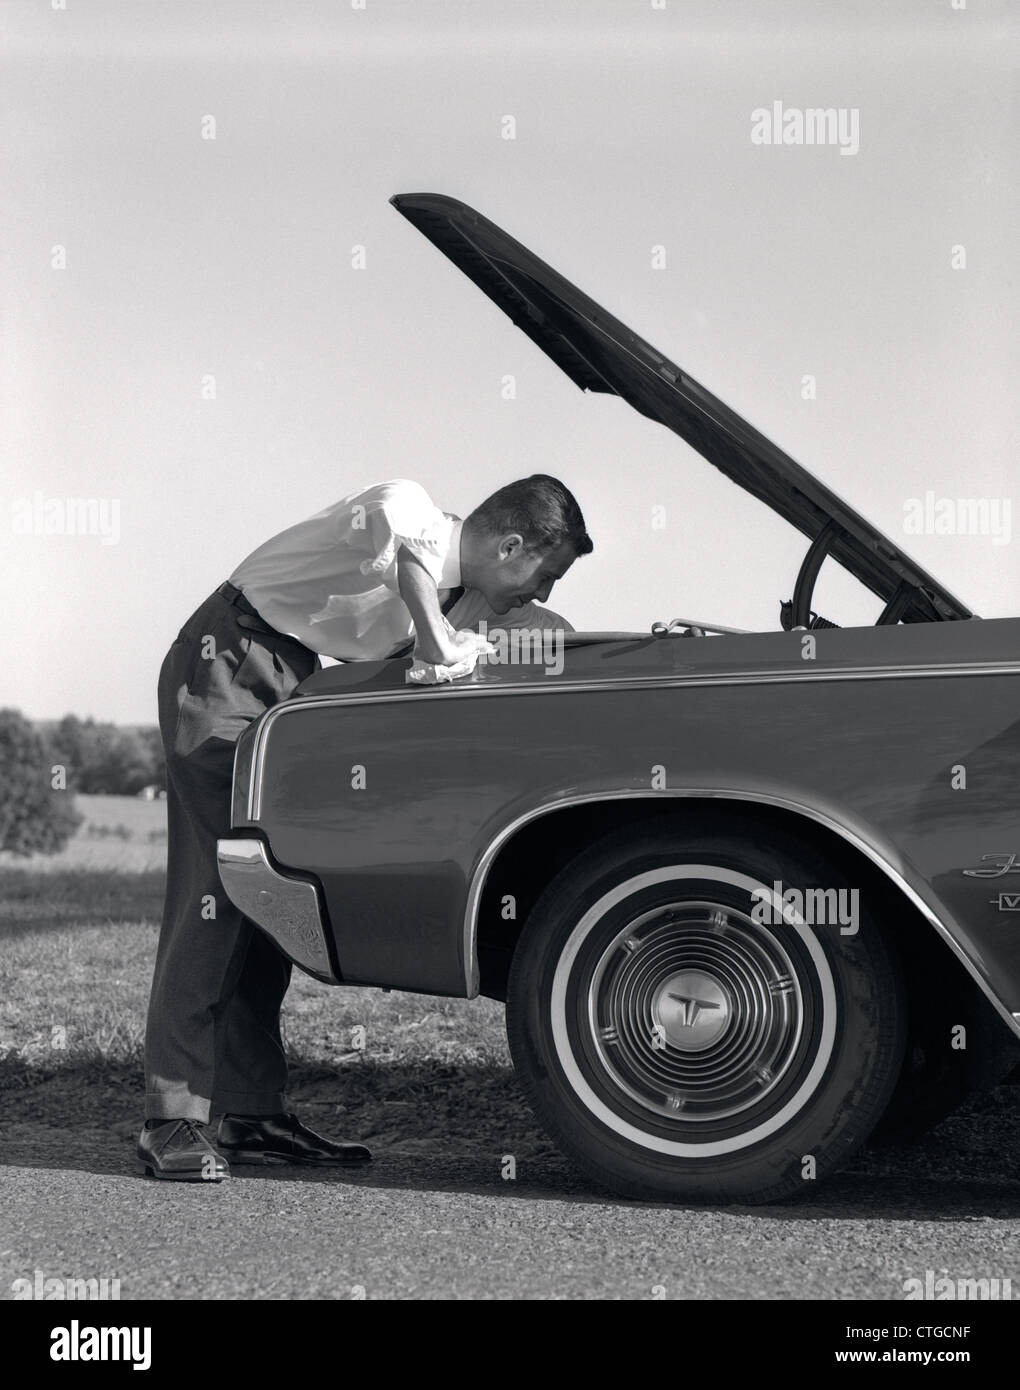 1960s SIDE VIEW OF MAN IN SHIRT & TIE LOOKING UNDER HOOD OF CAR PULLED UP ON SIDE OF ROAD - Stock Image